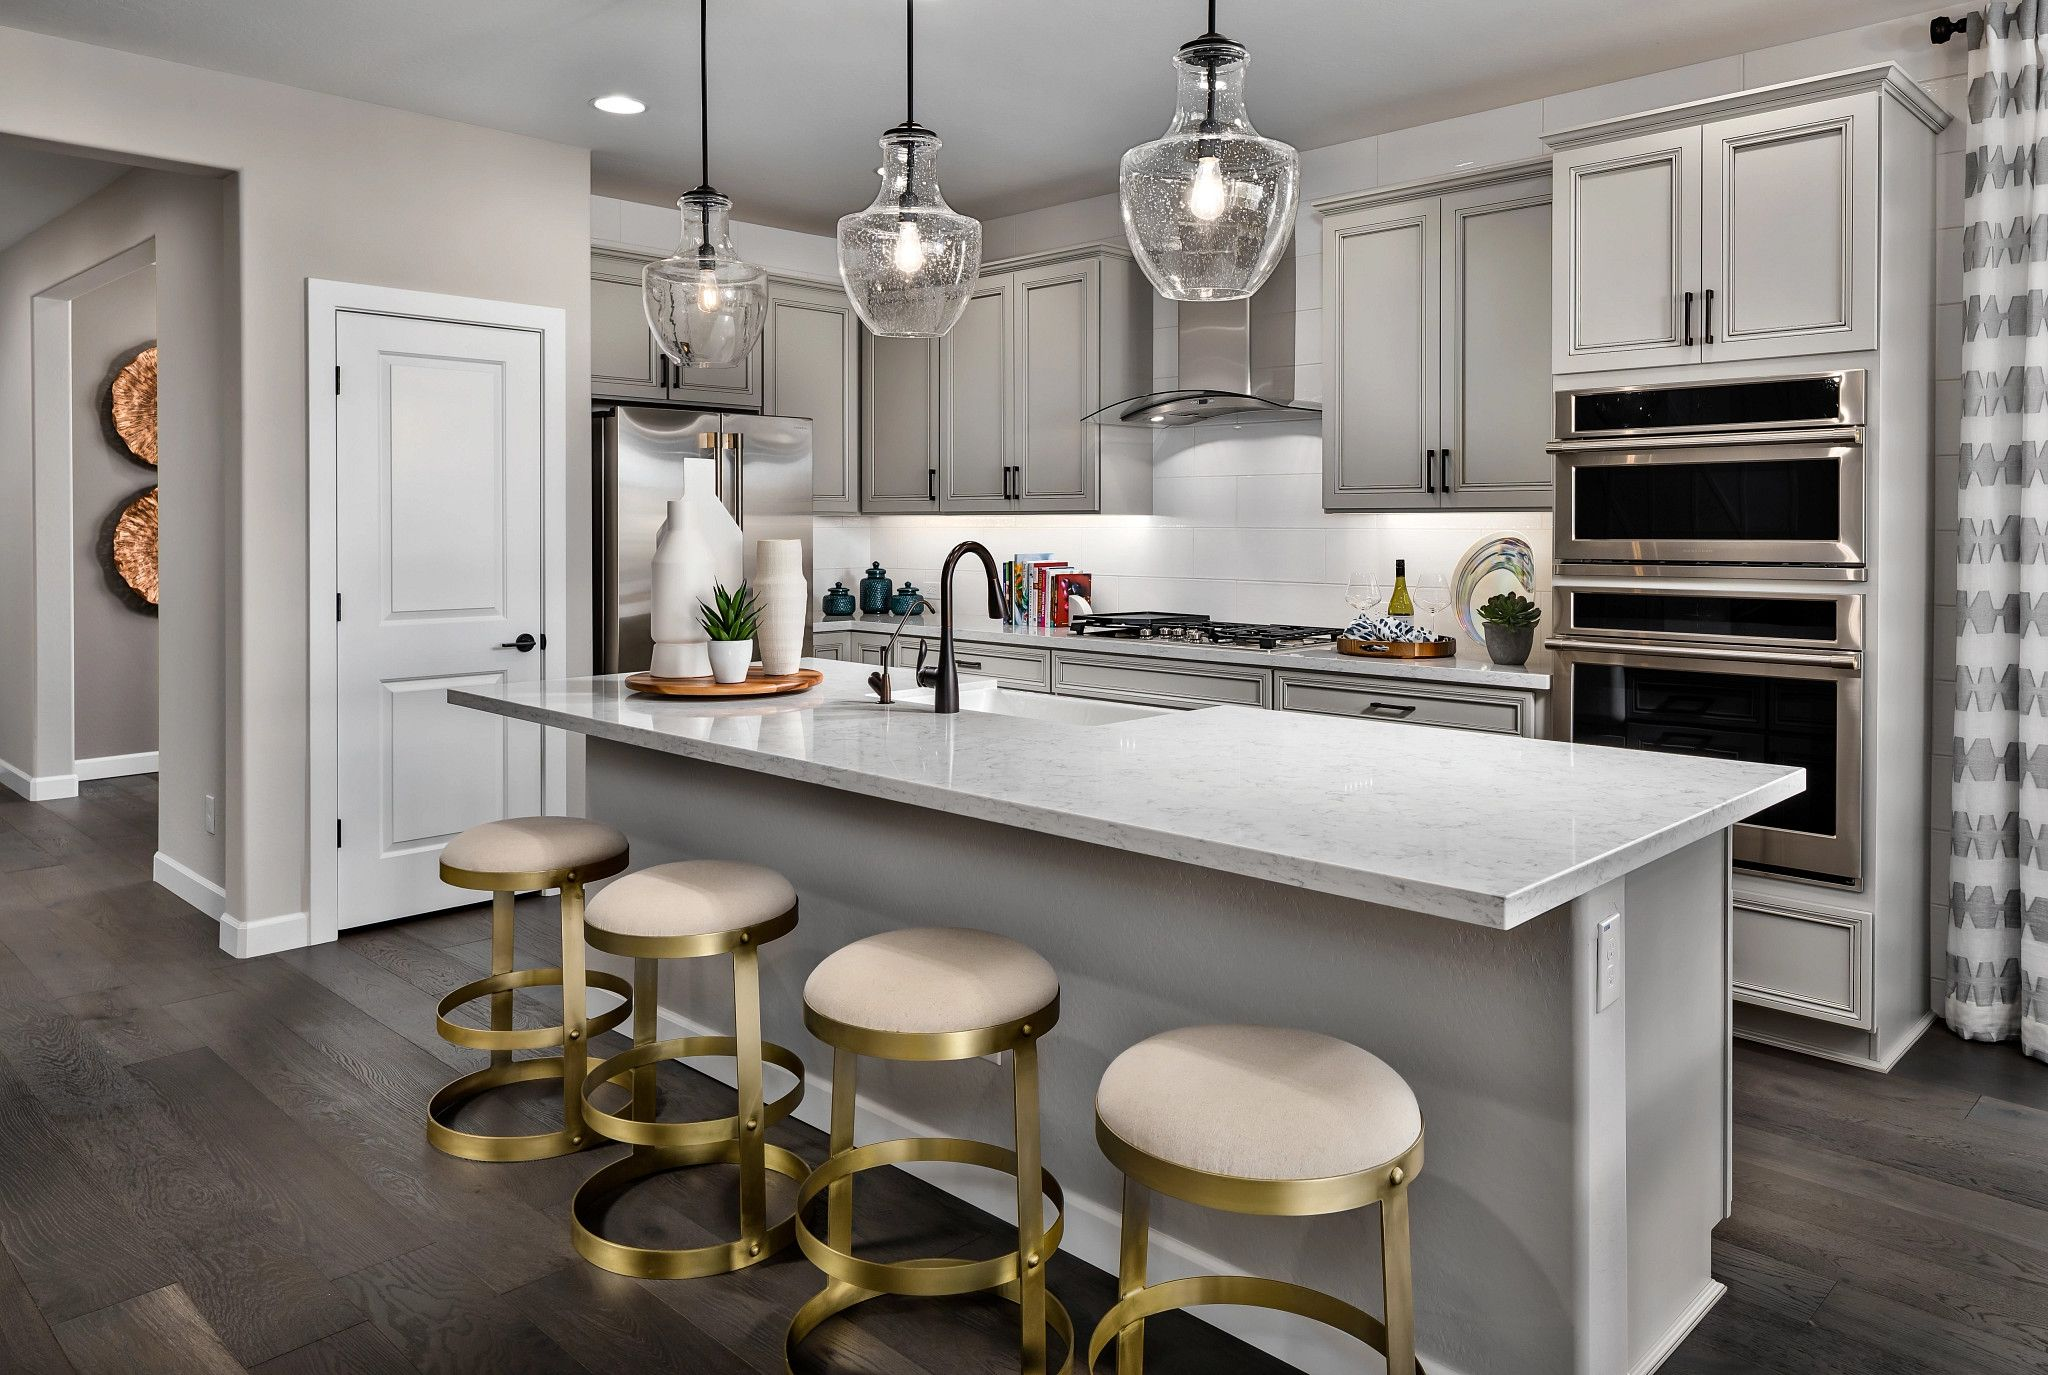 Kitchen featured in the Valletta By Shea Homes - Trilogy in Phoenix-Mesa, AZ